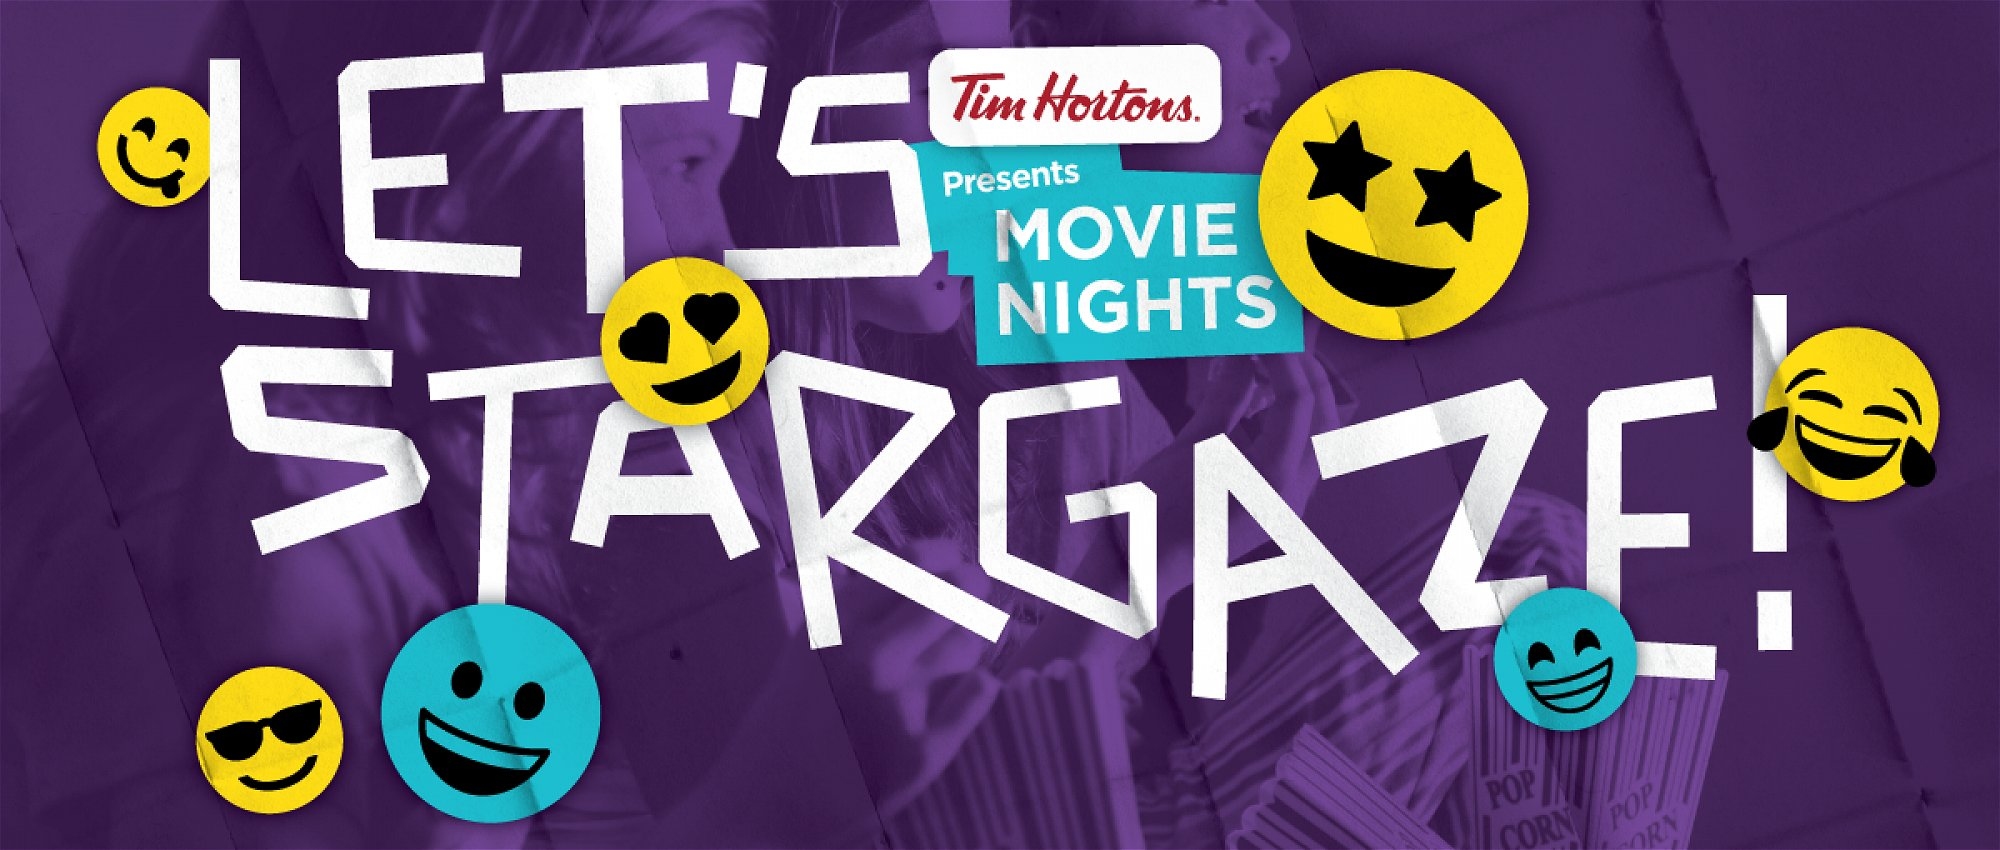 Celebration Square Thursday Movie Nights Google image from https://culture.mississauga.ca/sites/default/files/event/movienights2017_1200x600_r1eventpage.png8